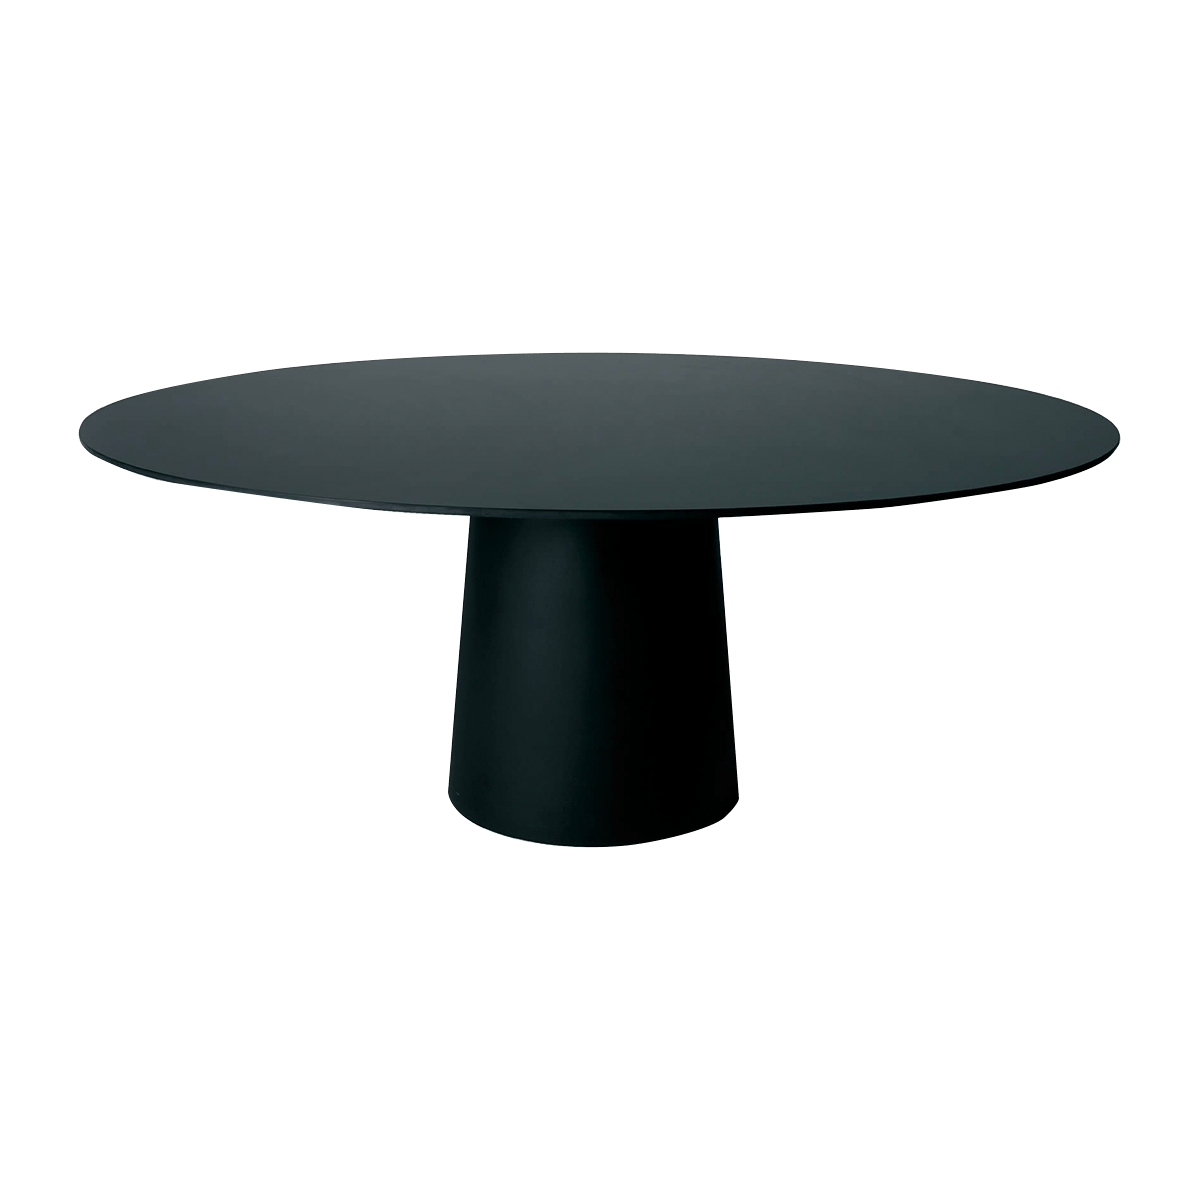 Moooi  Container Table 7156 桌子